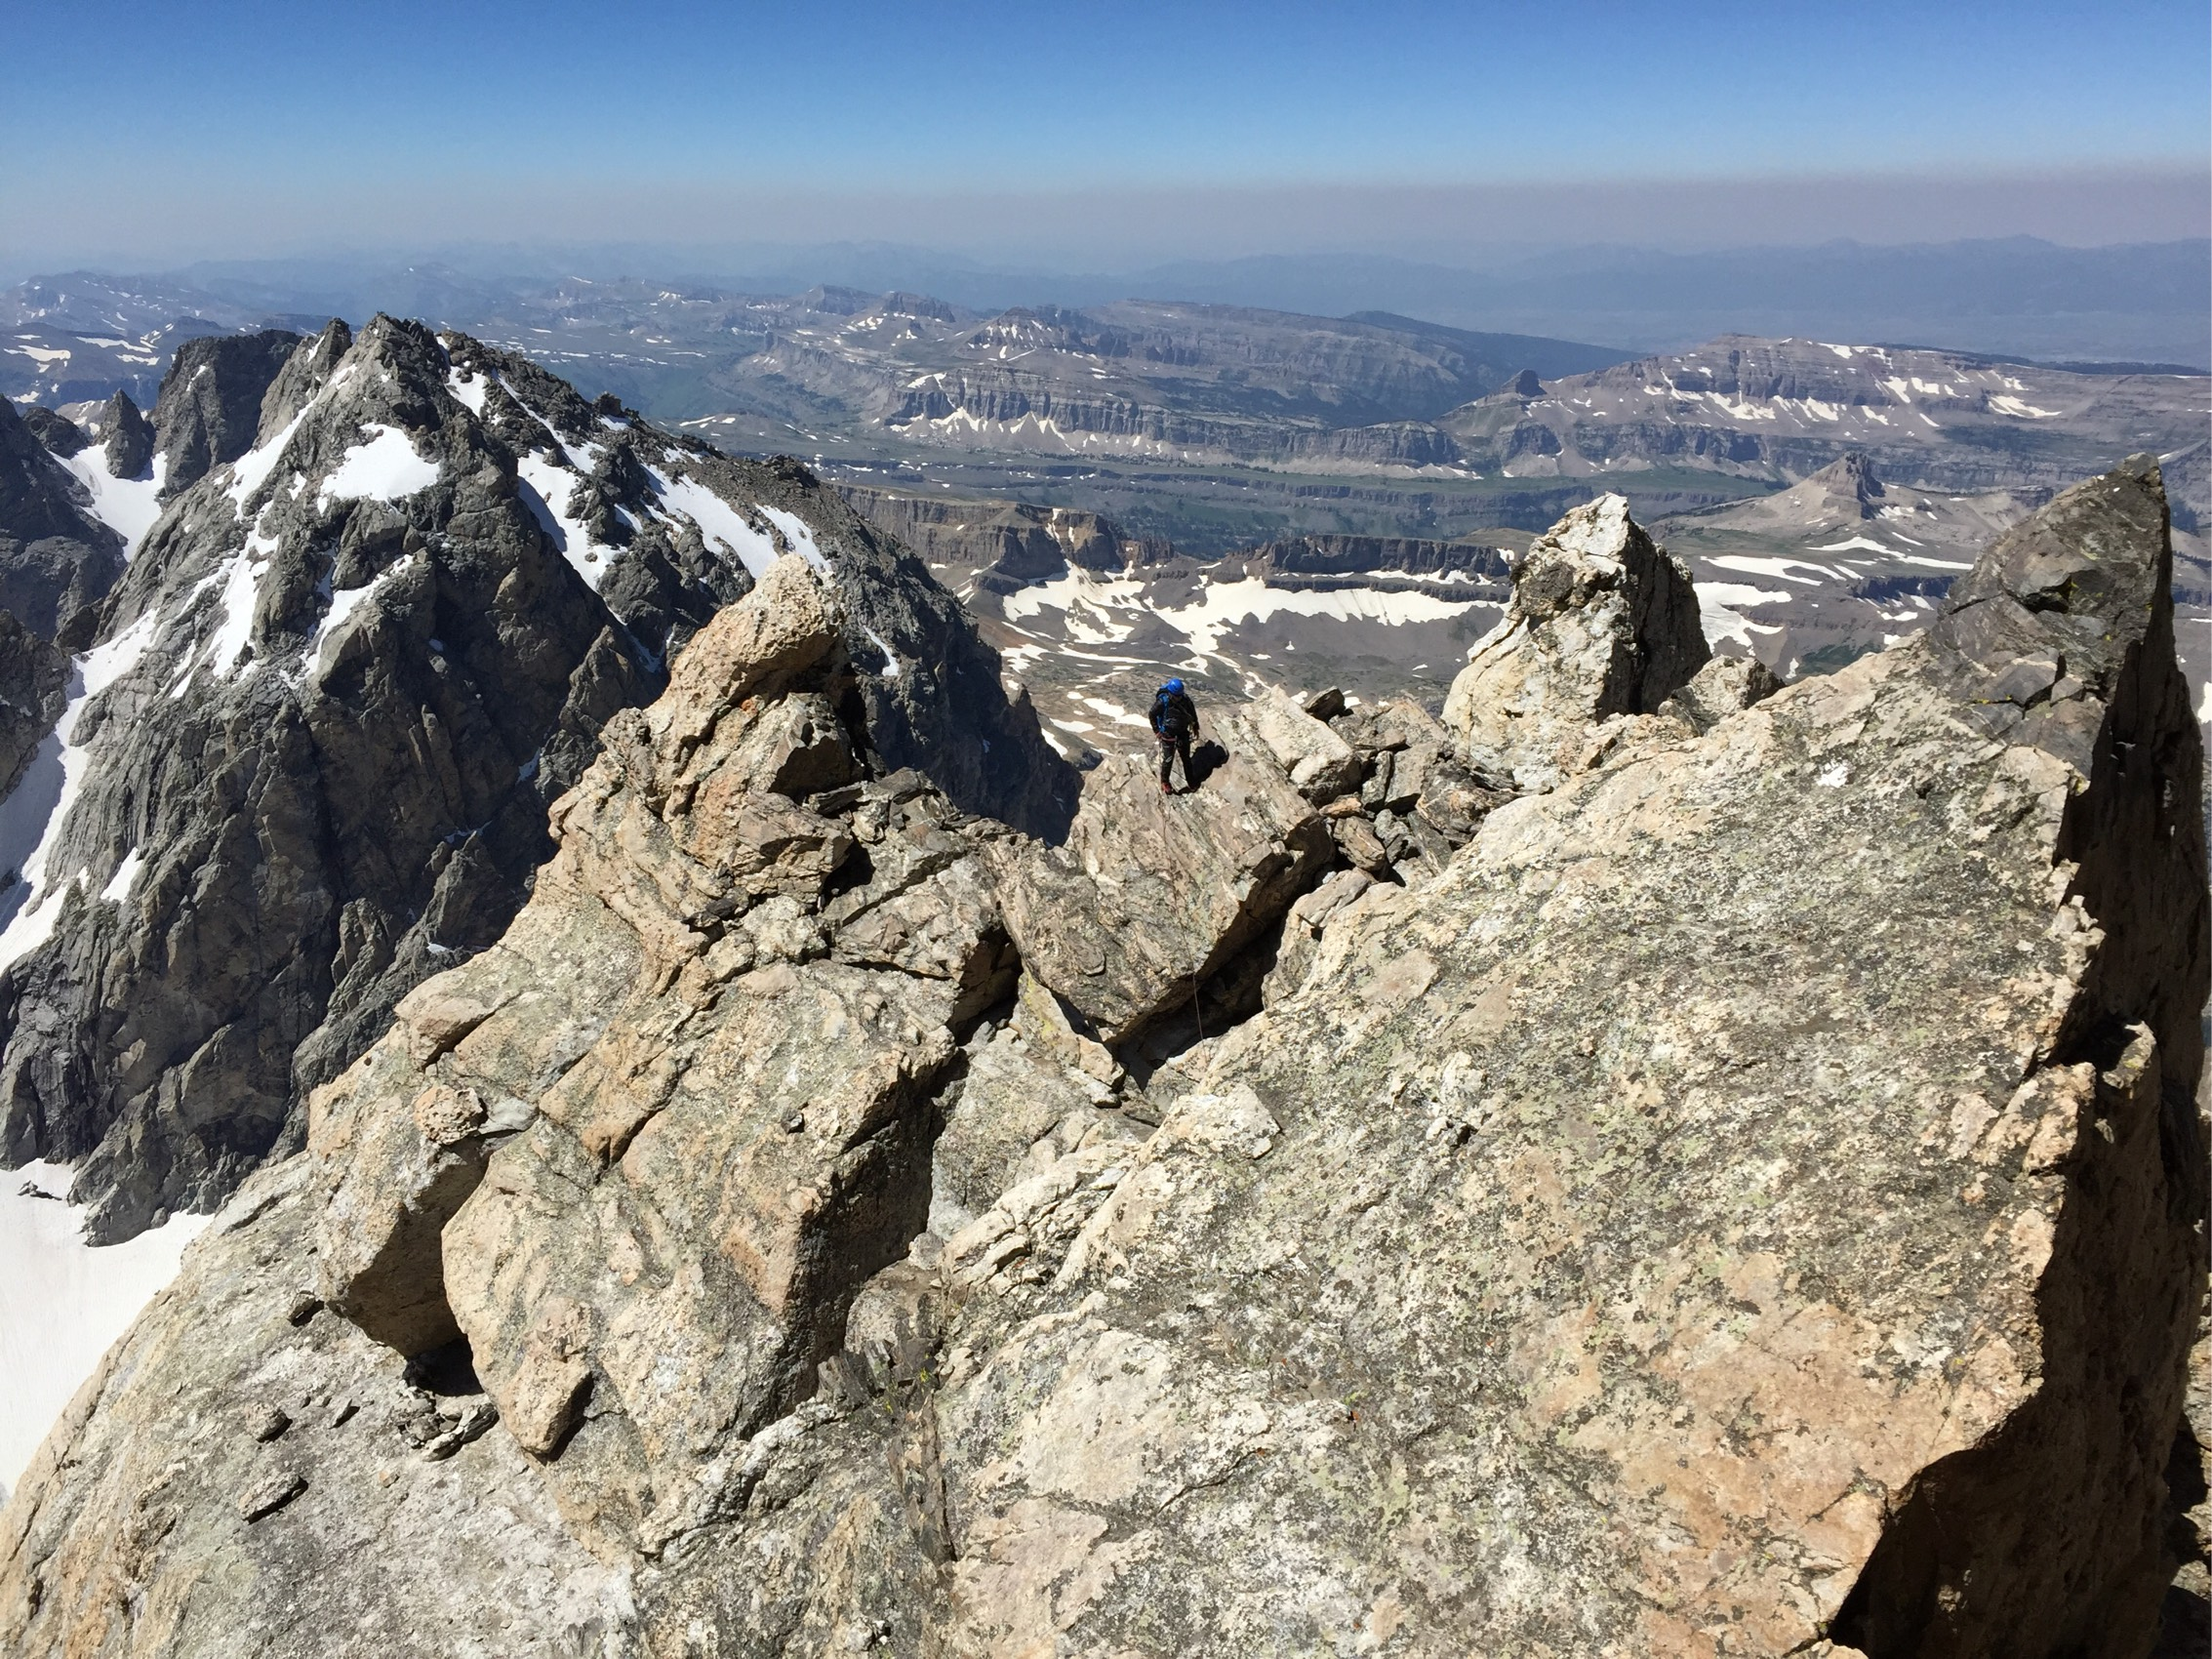 View from the Grand Teton